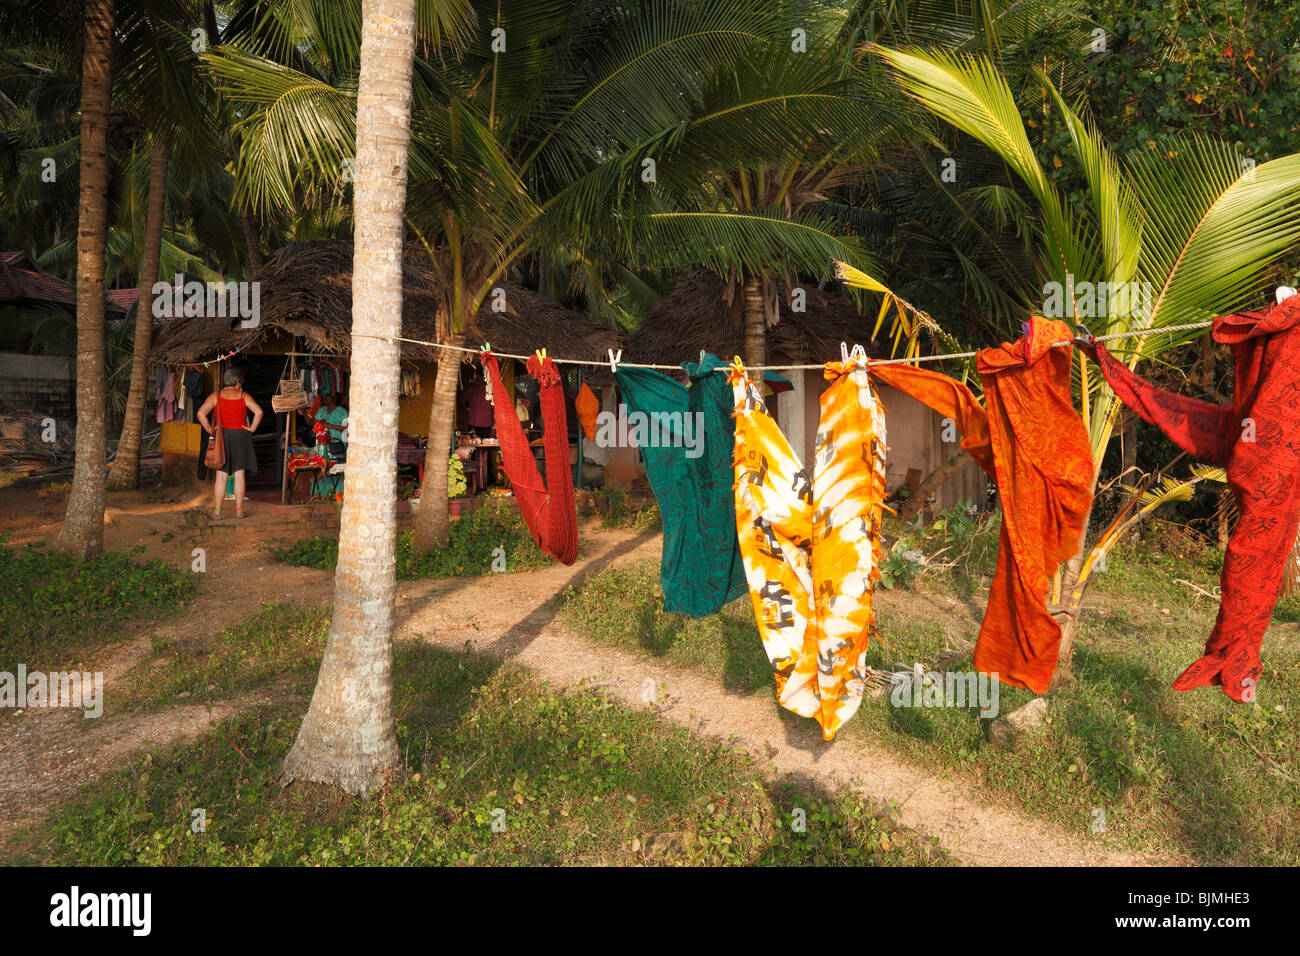 Fabrics hanging on a clothesline, sewing hut under palms, south of Kovalam, Kerala state, India, Asia - Stock Image